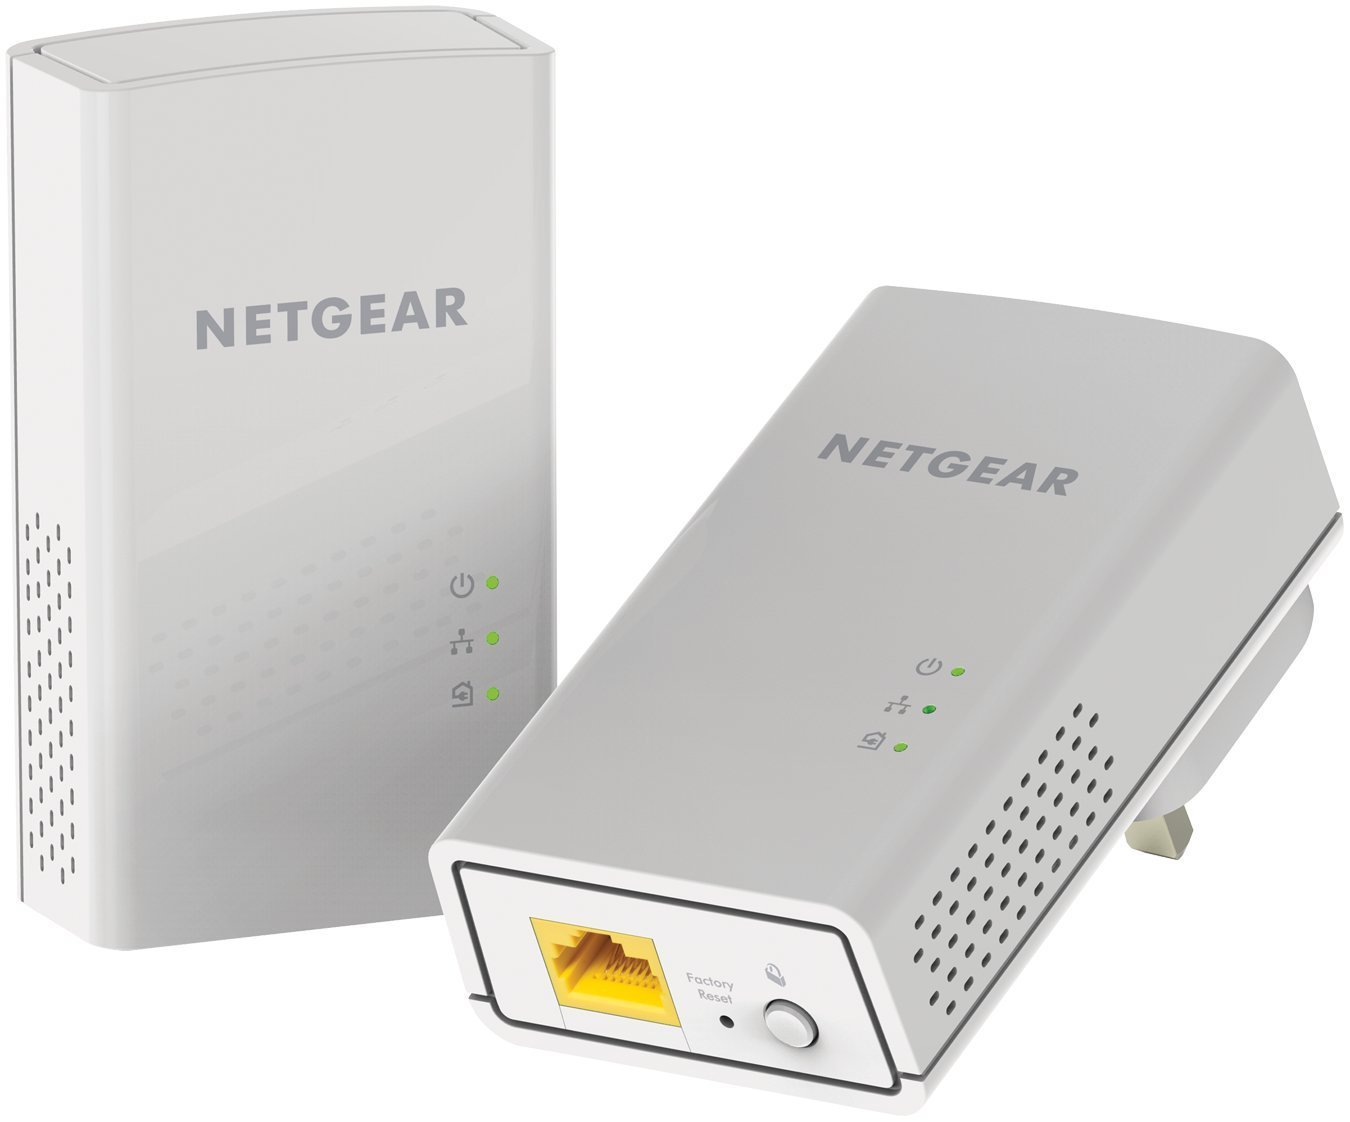 Netgear PL1000 Powerline Network Adapter